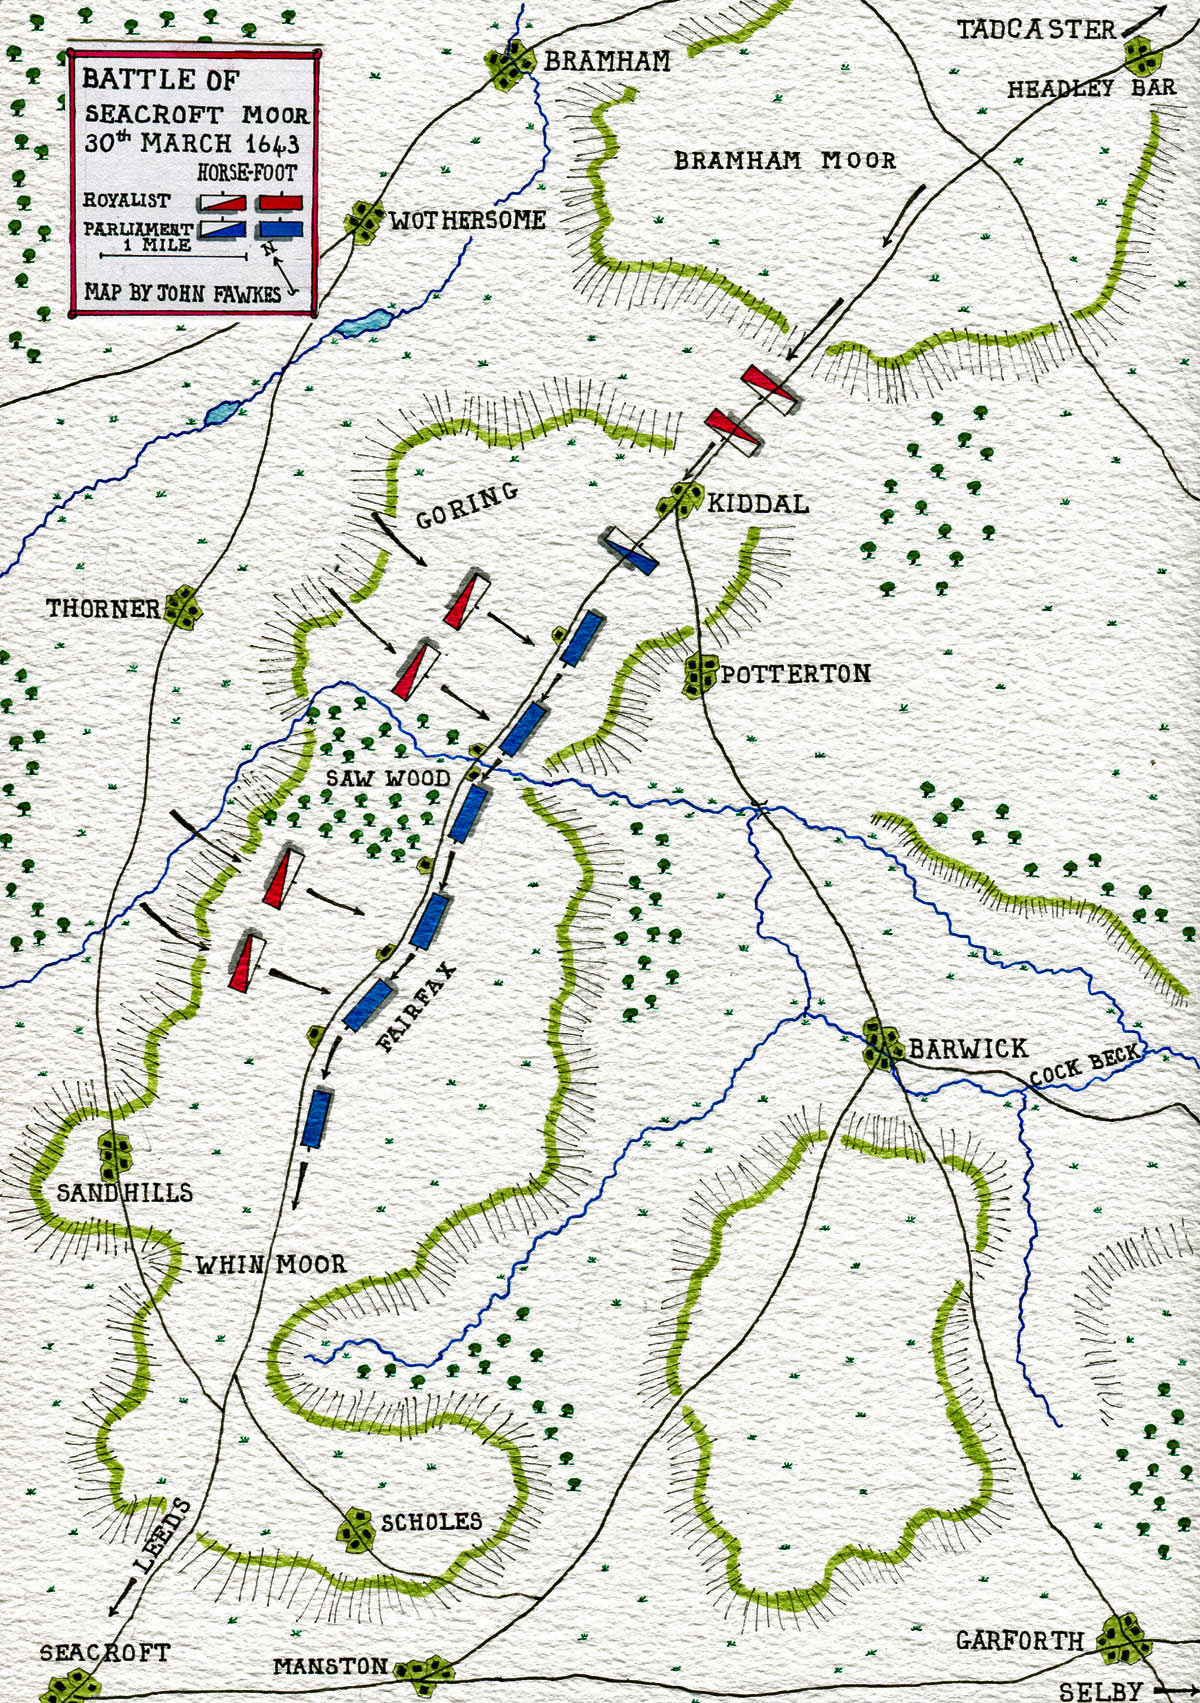 Battle Of Seacroft Moor On 30th March In The English